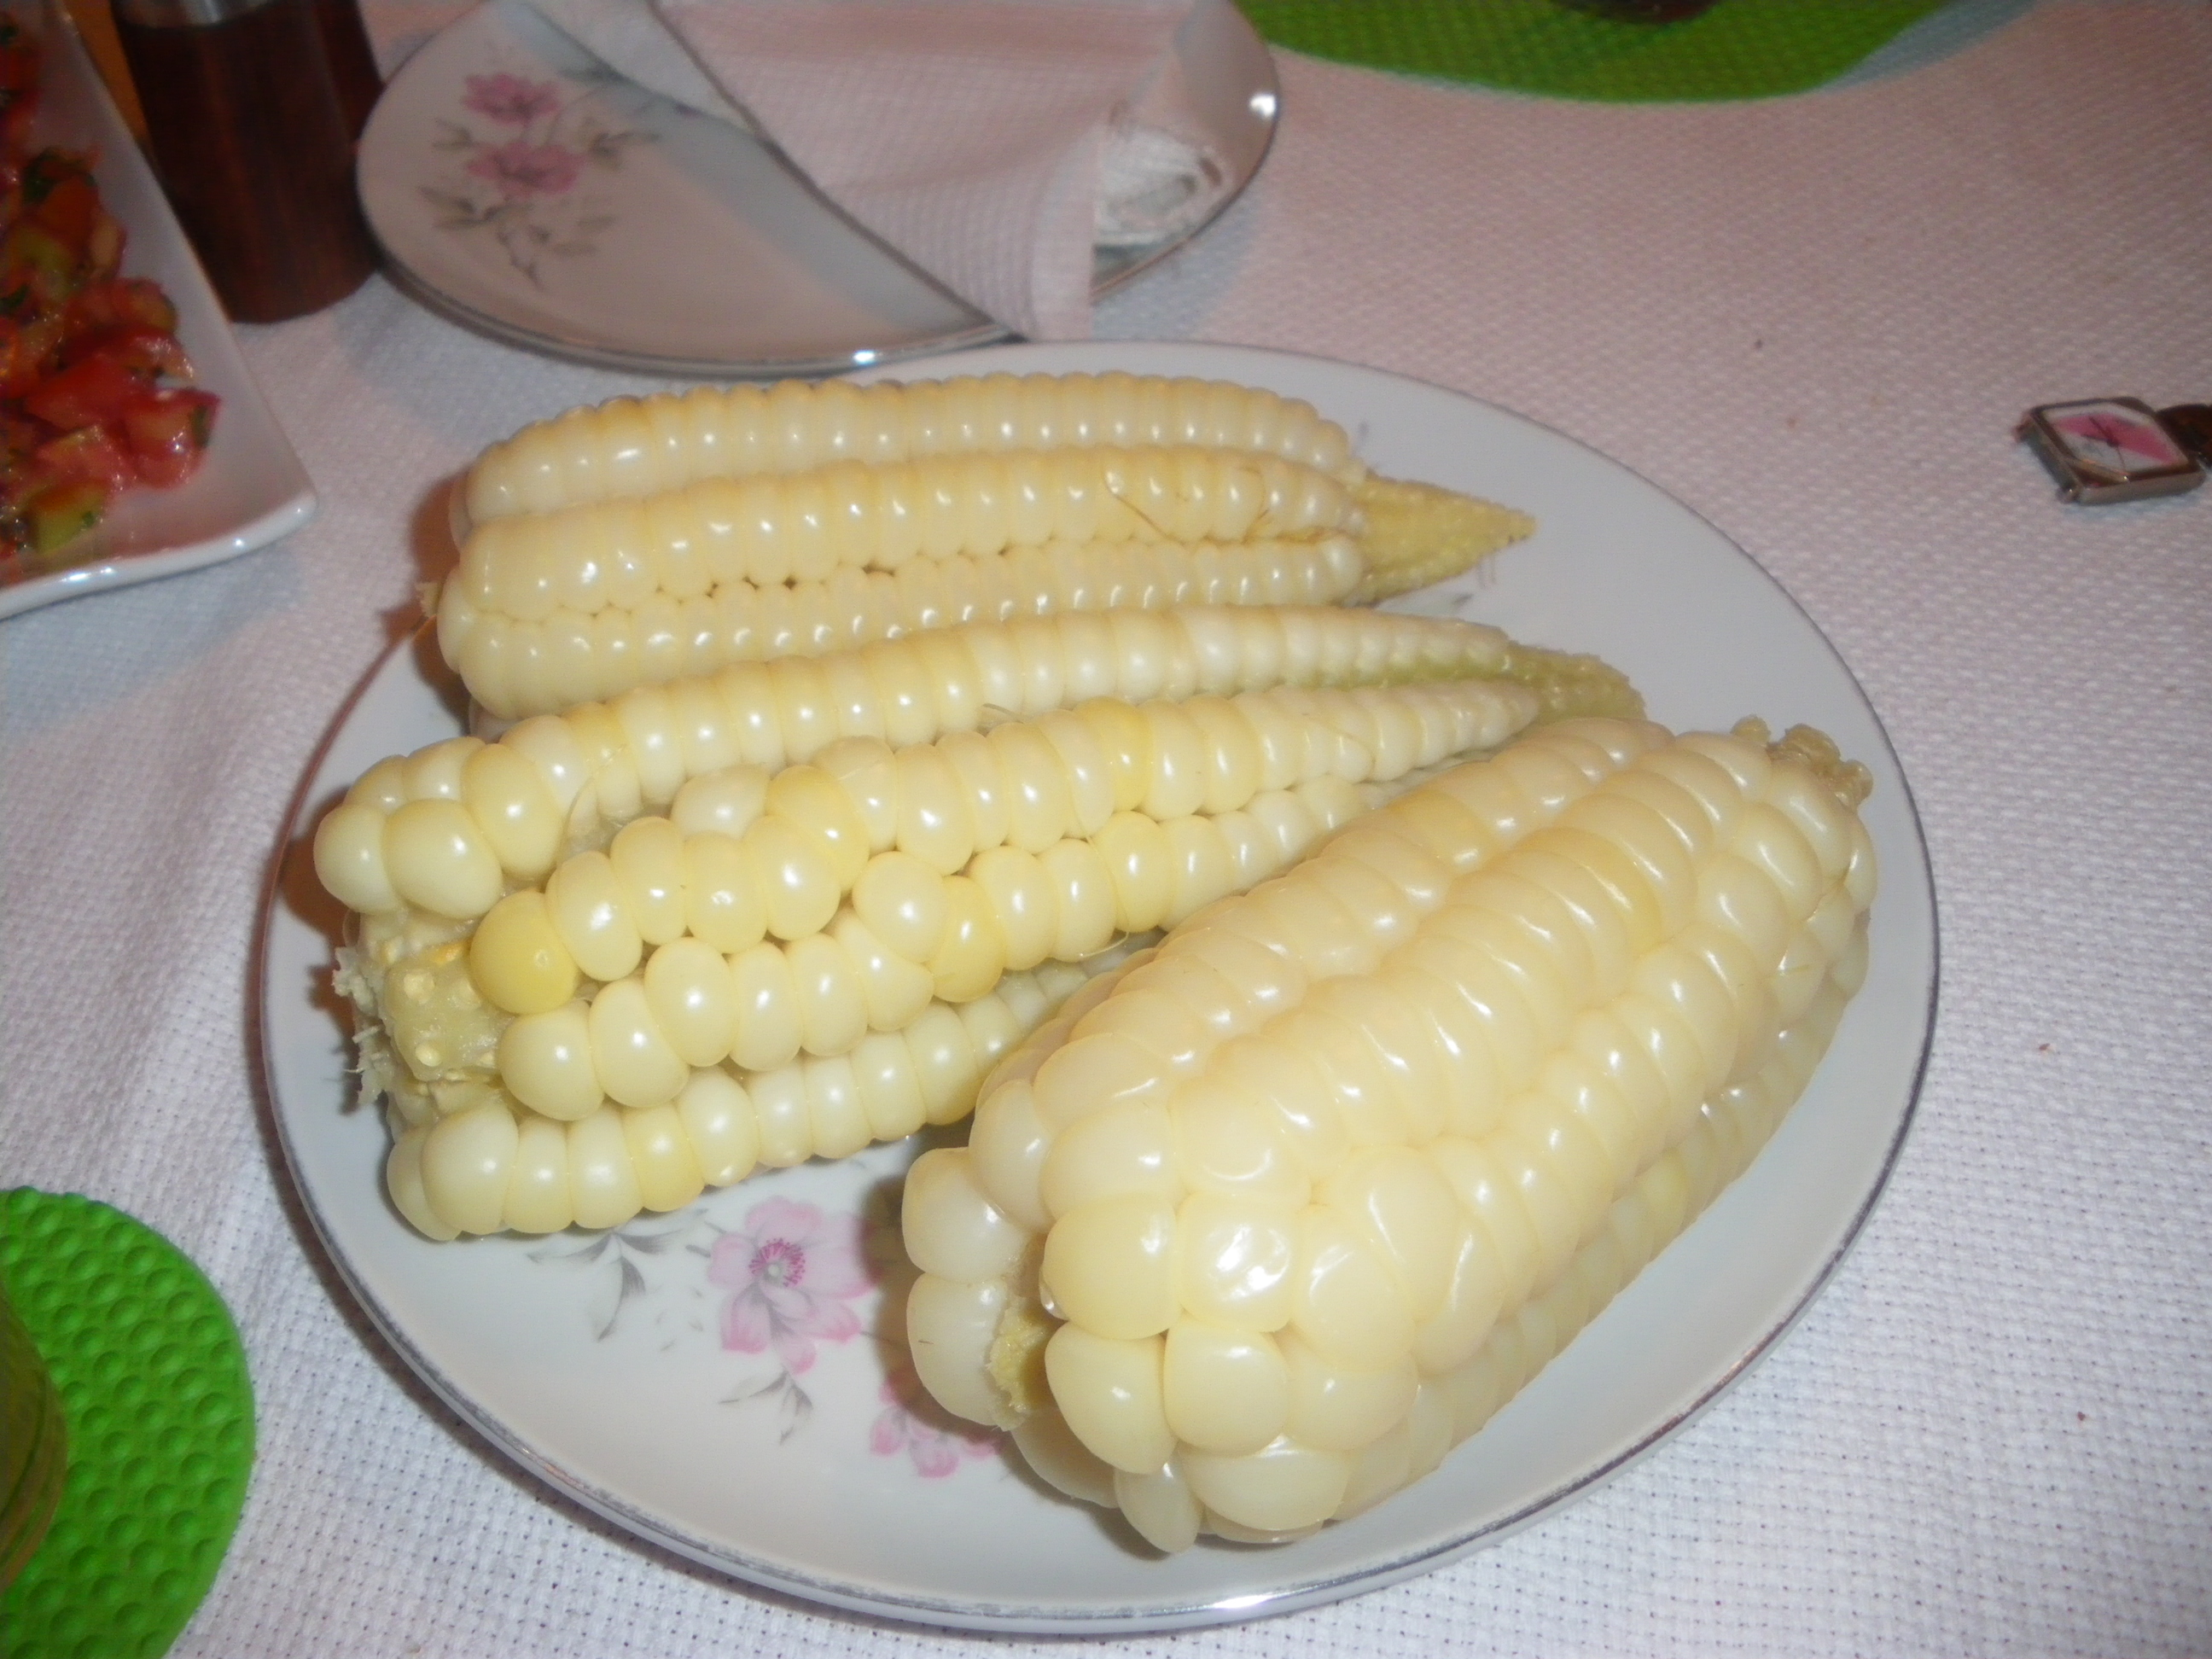 Choclo, the big kerneled corn that is typical to Peru, as served by Señora Aldé